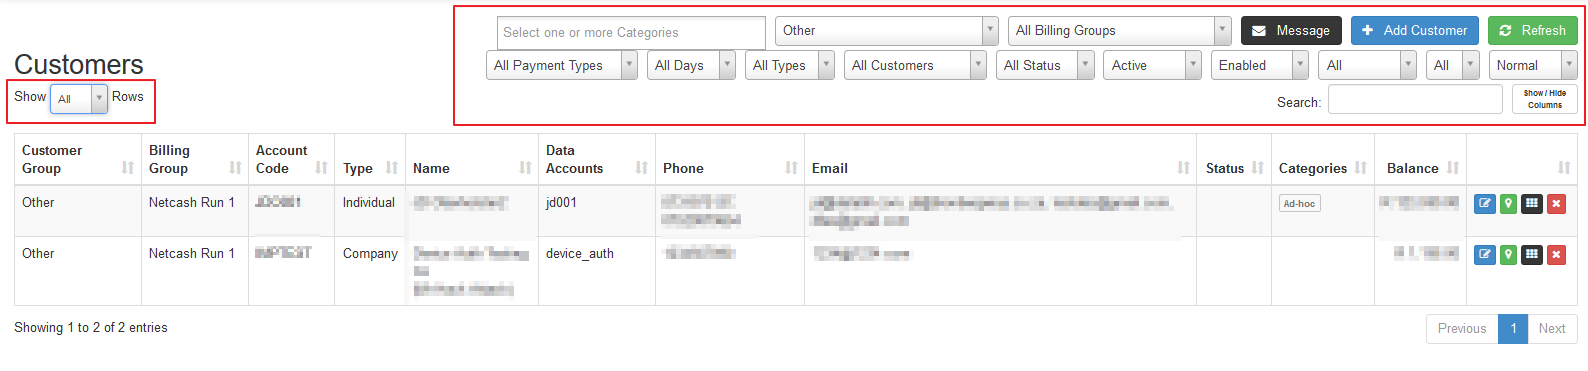 customer list filters